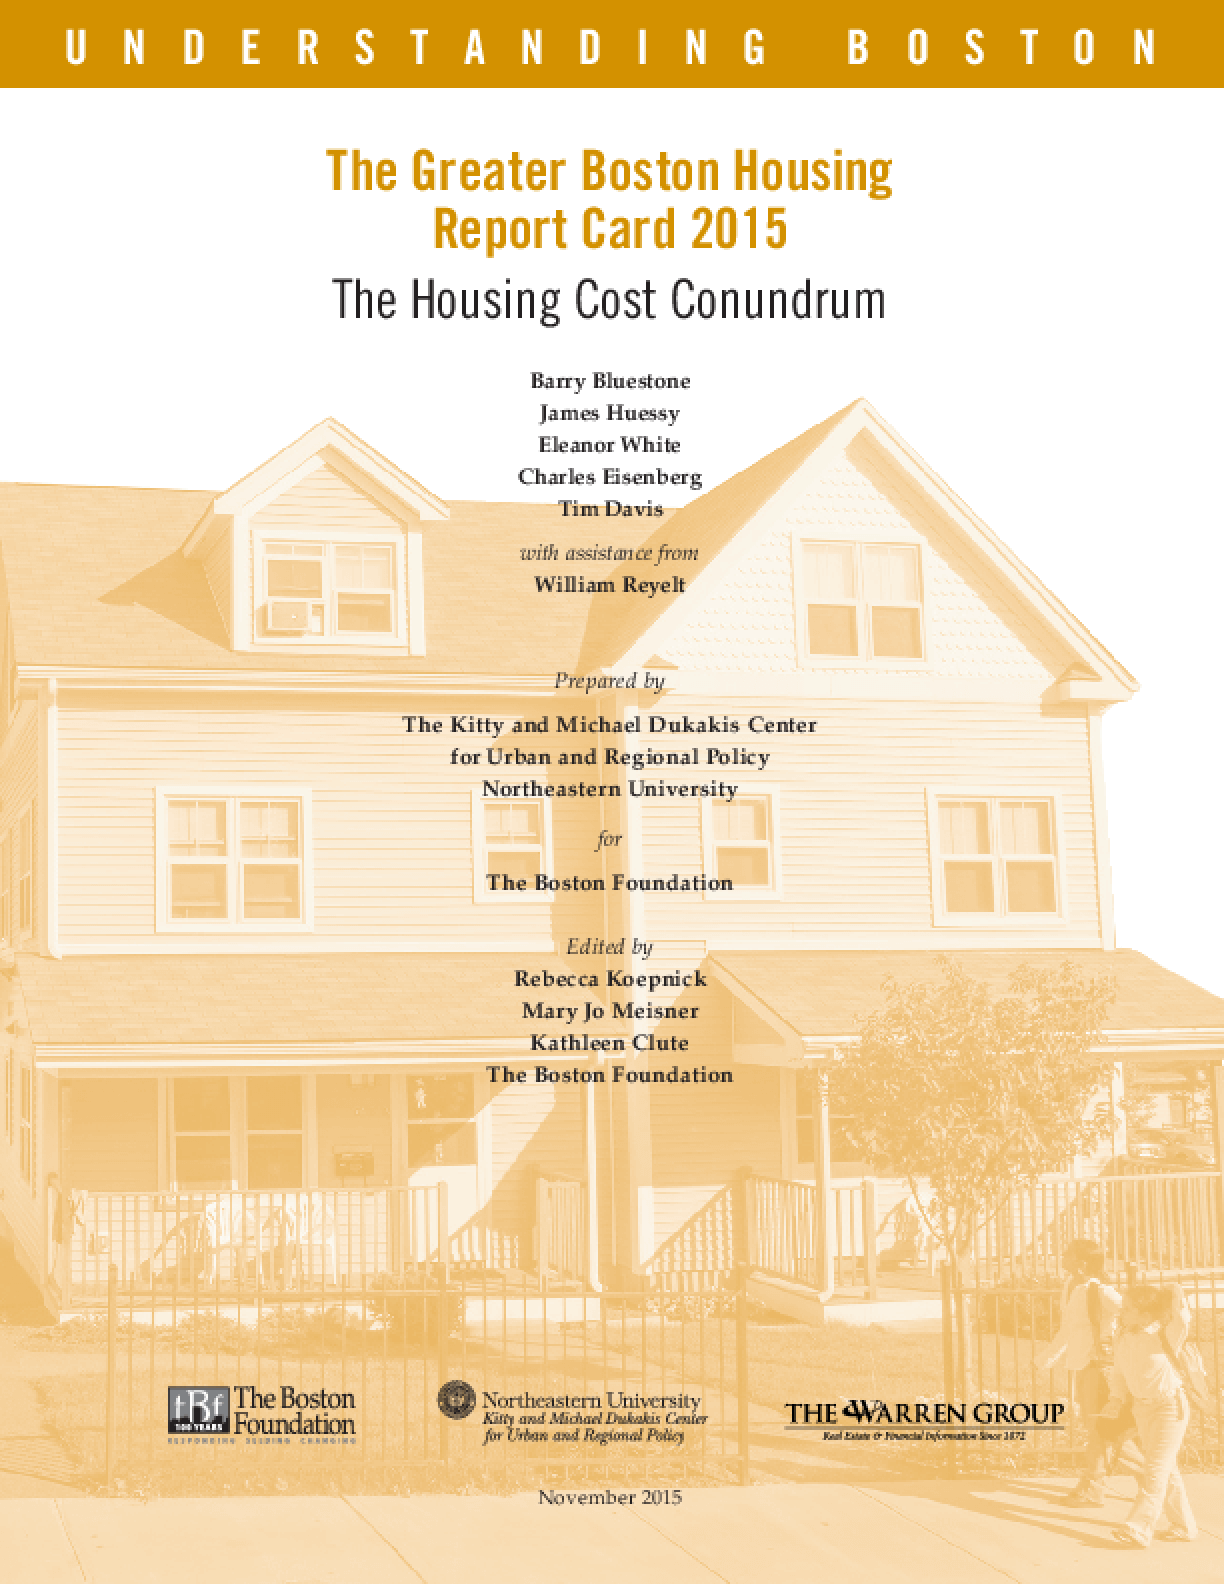 The Greater Boston Housing Report Card 2015: The Housing Cost Conundrum